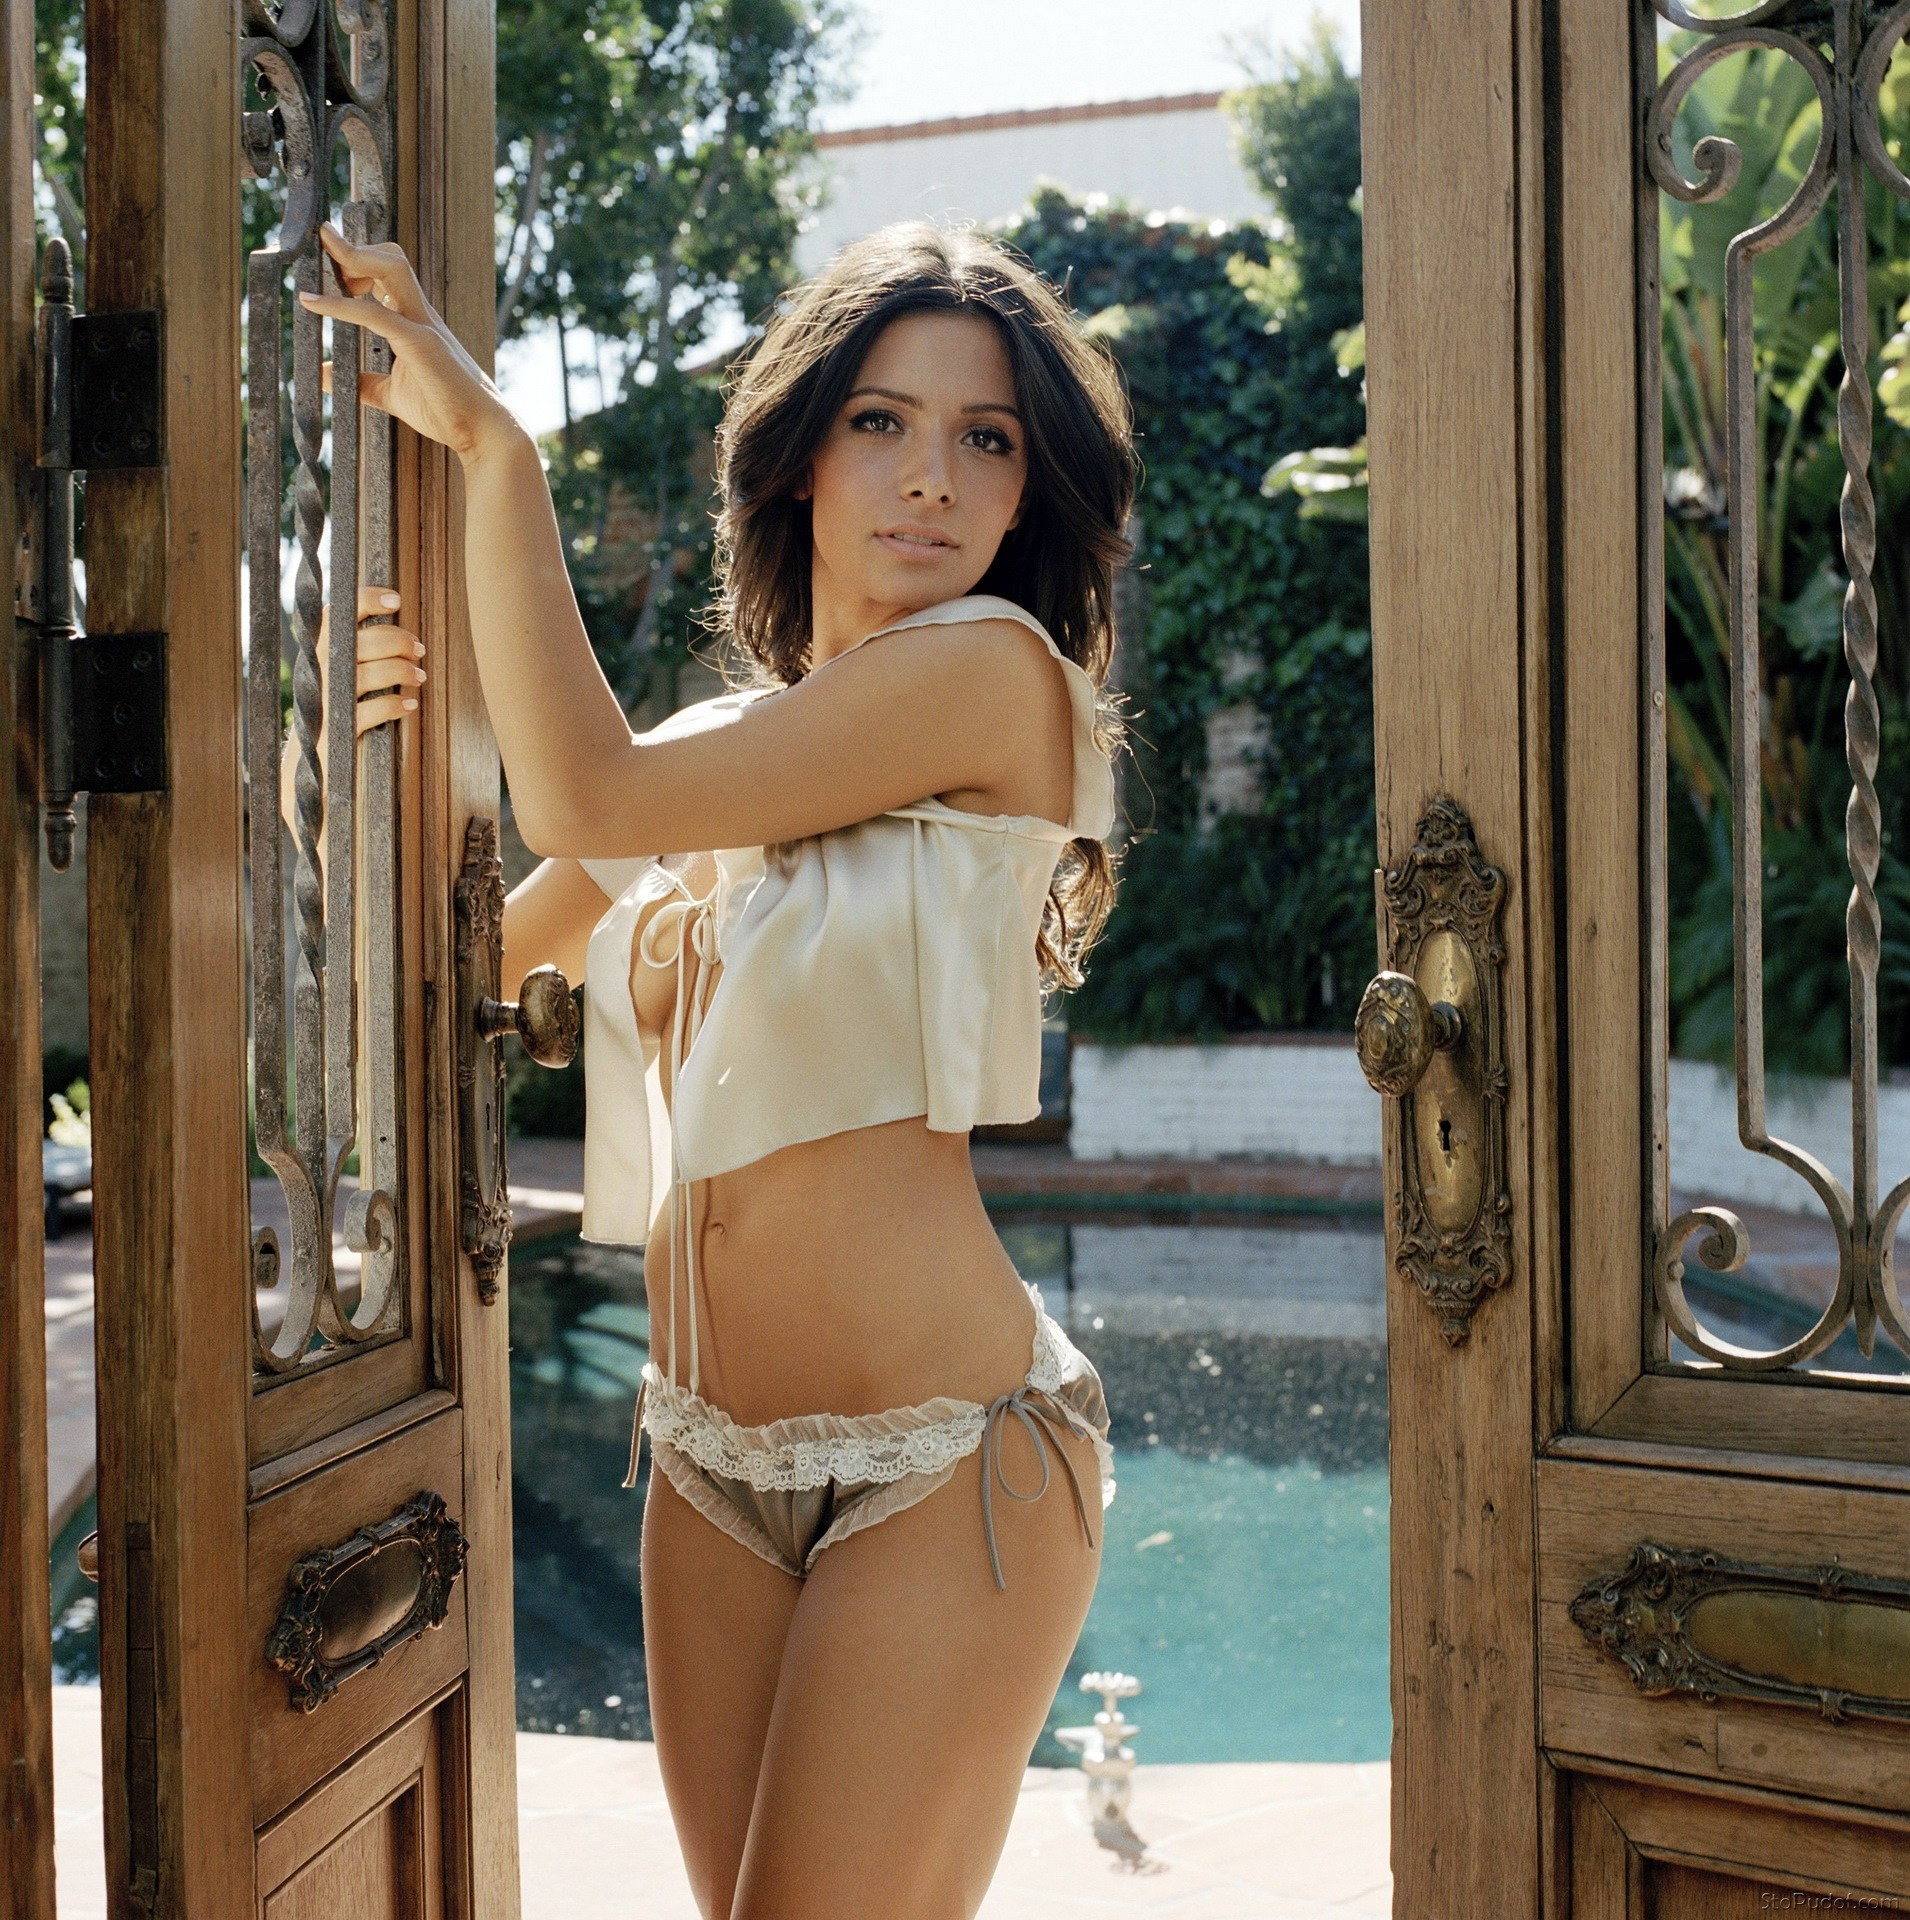 the pictures of Sarah Shahi nude - UkPhotoSafari